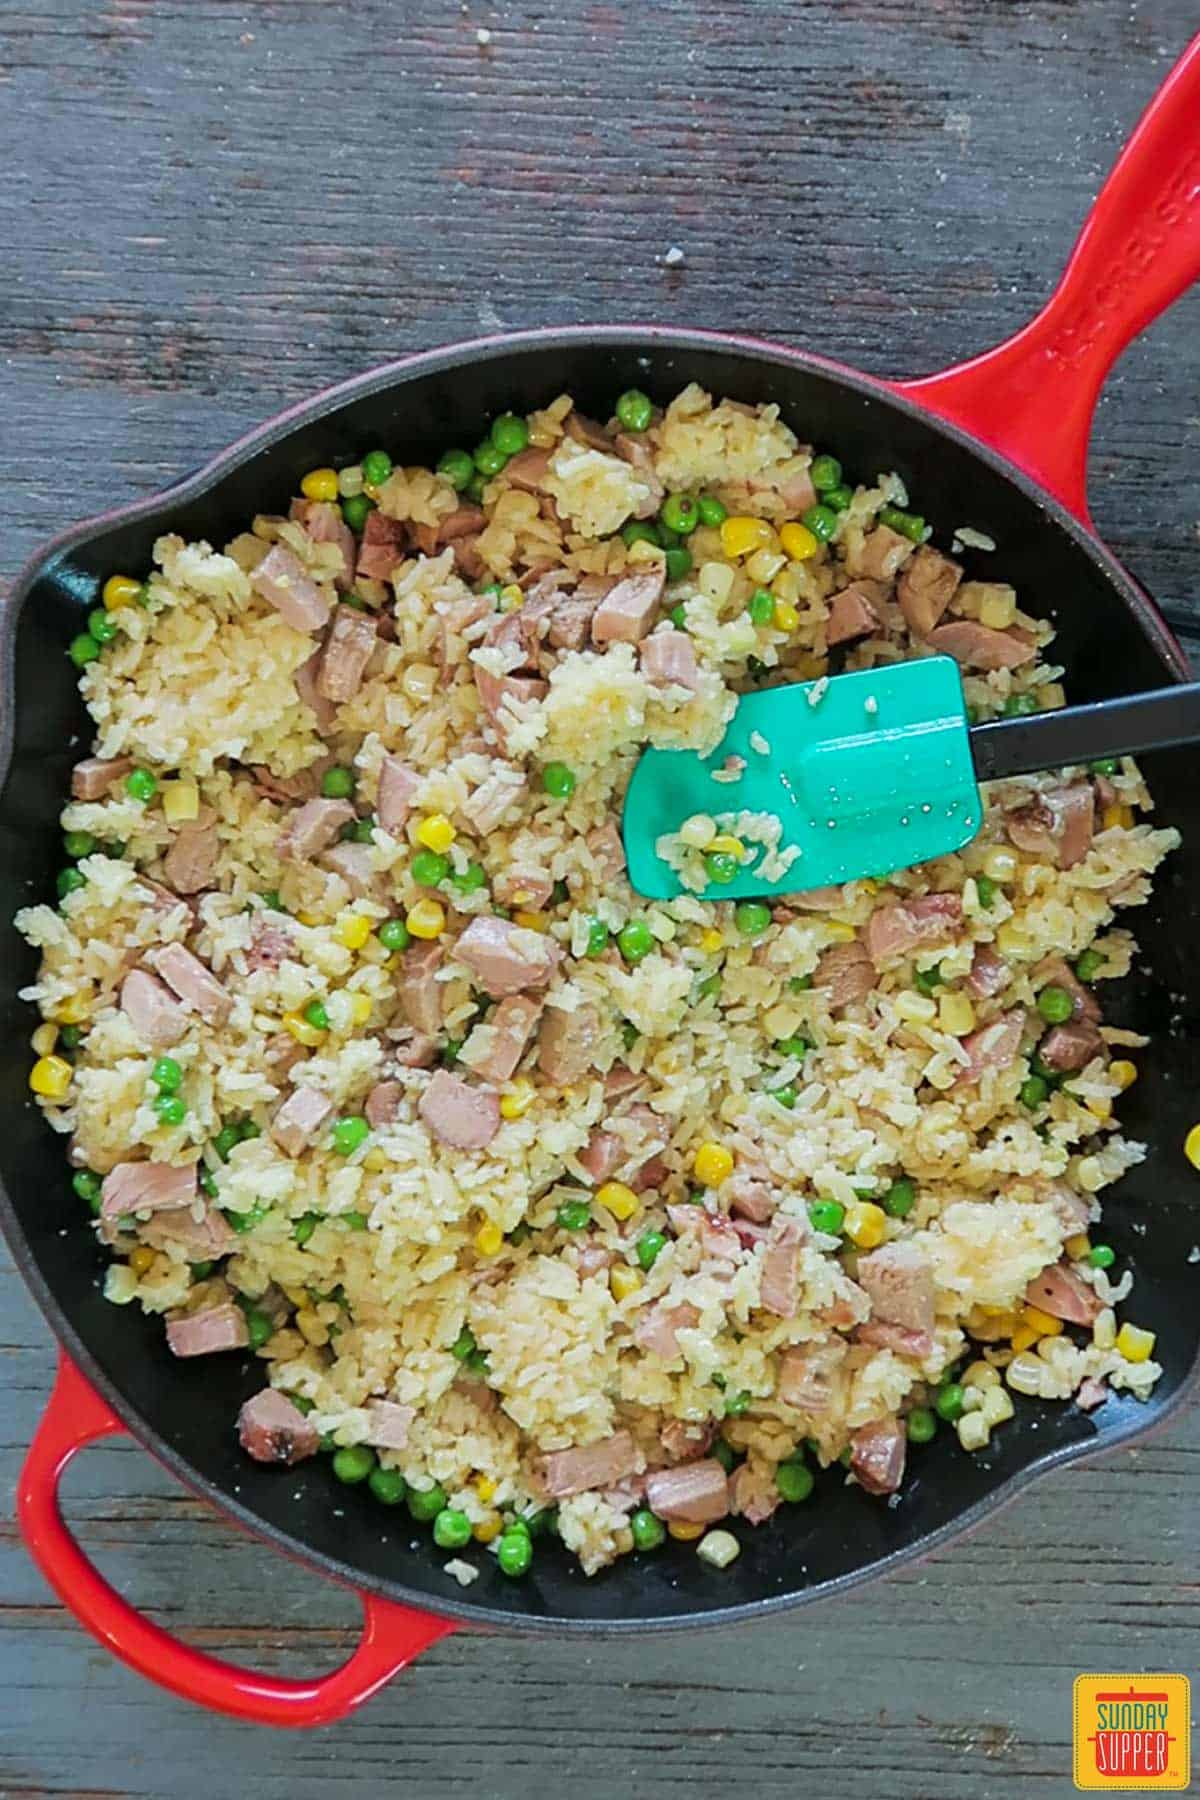 Stirring pork and fried rice in skillet